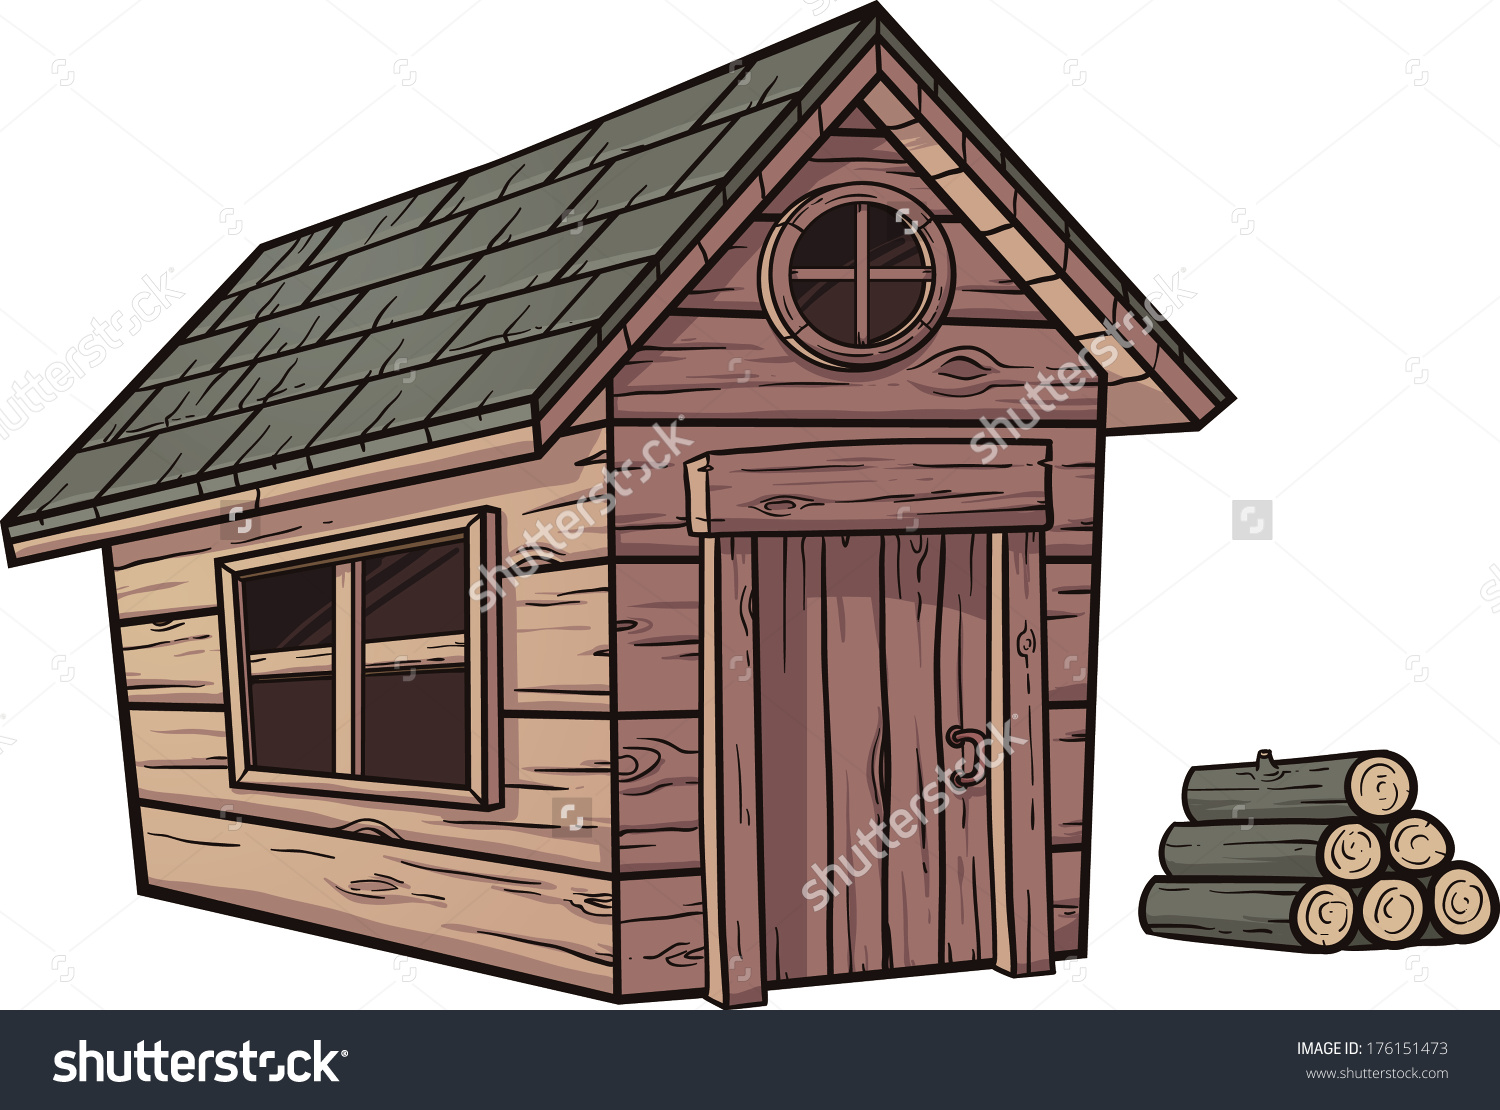 Cartoon Wooden Cabin Vector Clip Art Stock Vector 176151473.